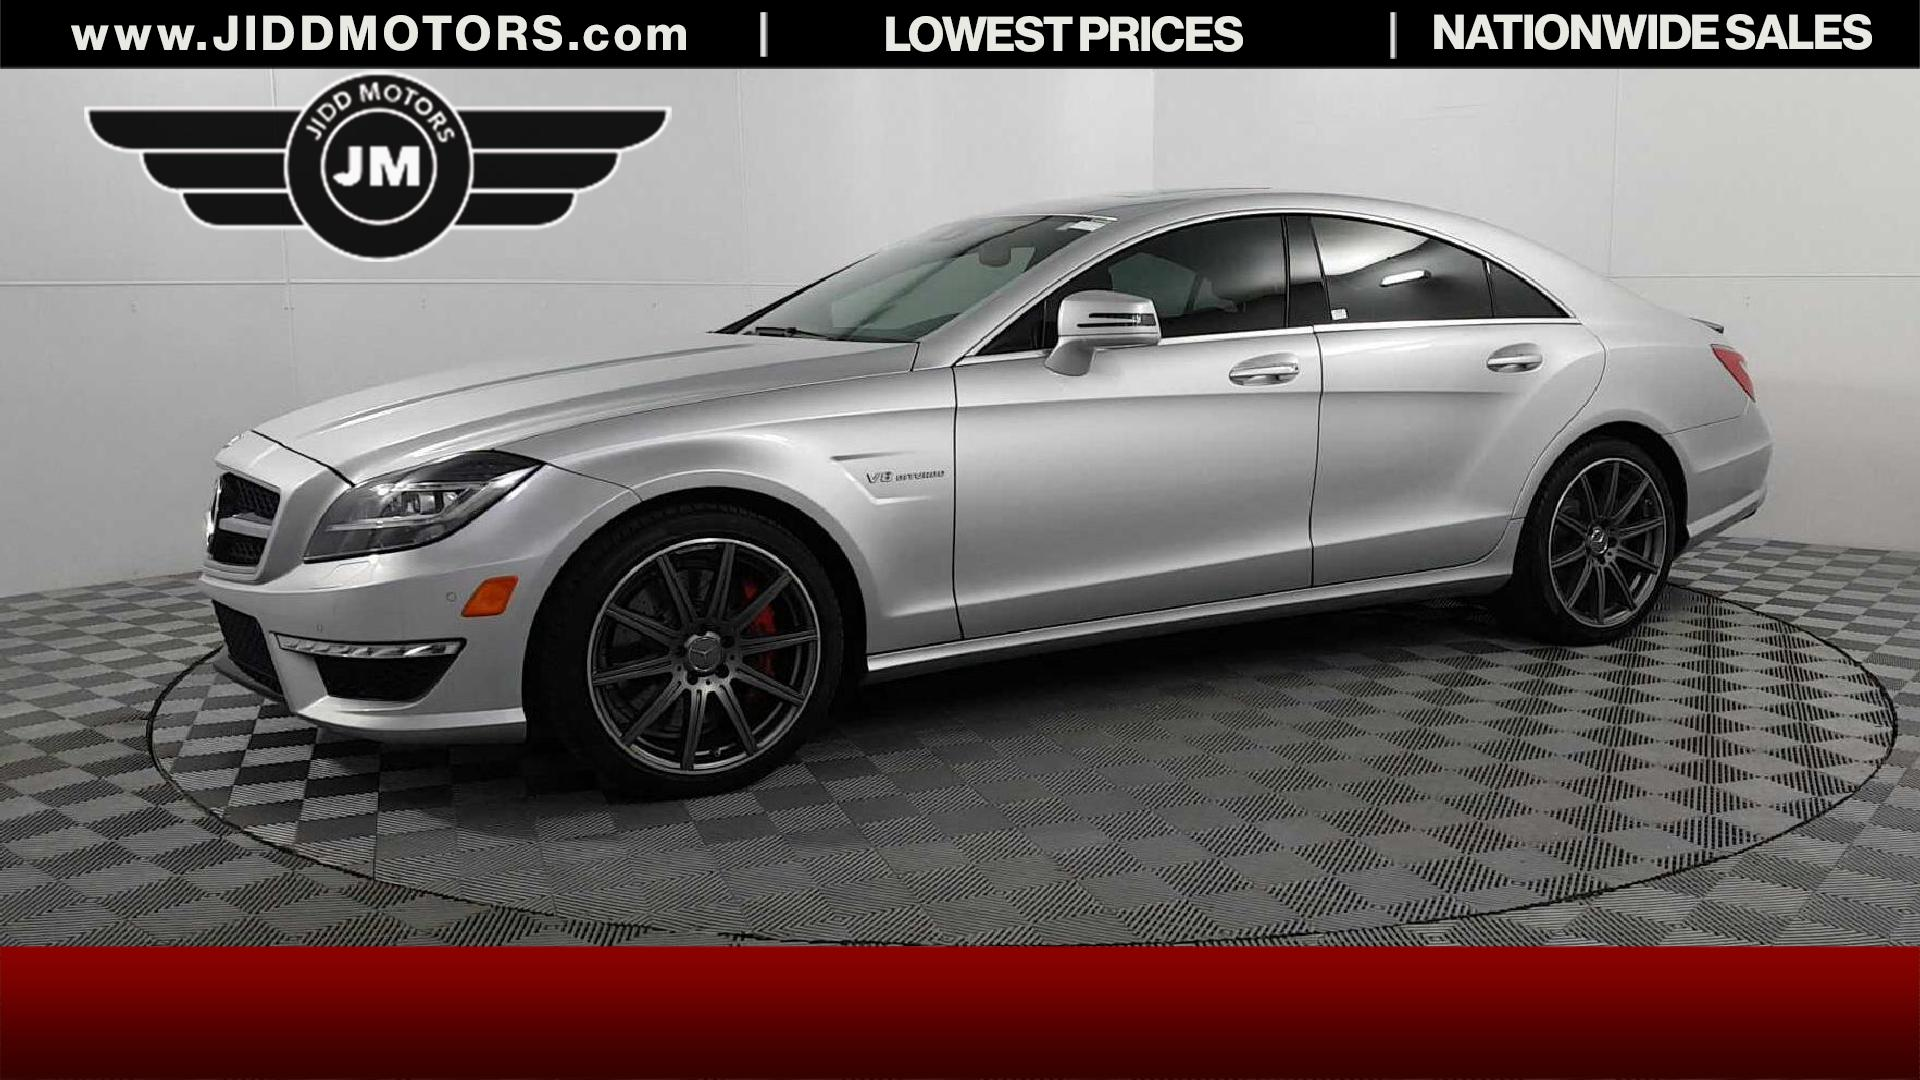 Sold 2014 Mercedes Benz CLS CLS 63 AMG 4MATIC Premium1 in Des Plaines